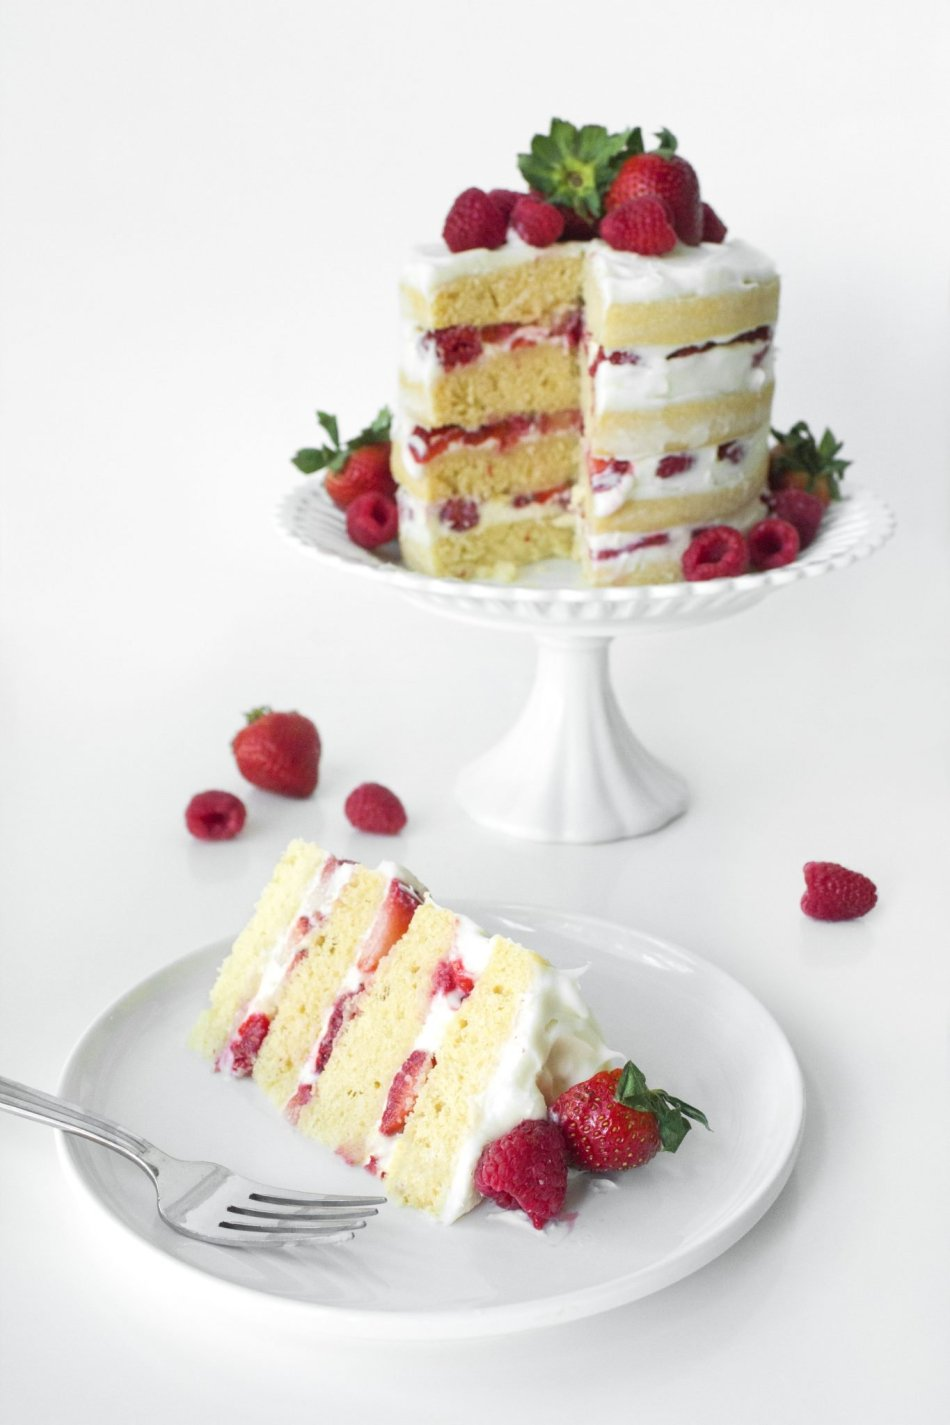 http://www.wifemamafoodie.com/white-chocolate-summer-berry-cake/